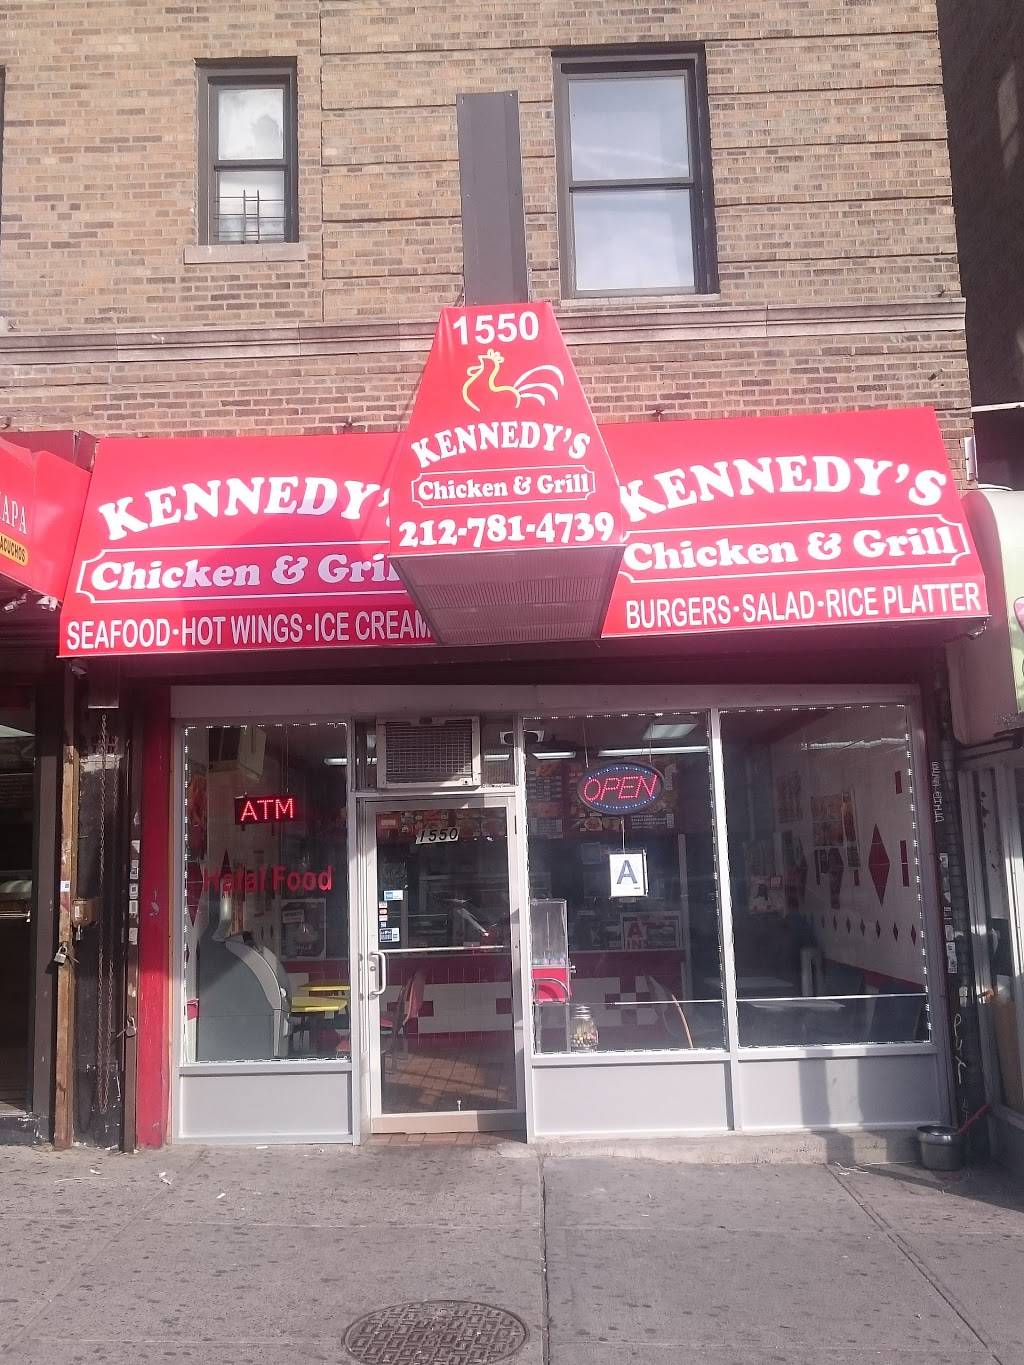 Kennedys Chicken and Grill   restaurant   1550 St Nicholas Ave, New York, NY 10040, USA   2127814739 OR +1 212-781-4739